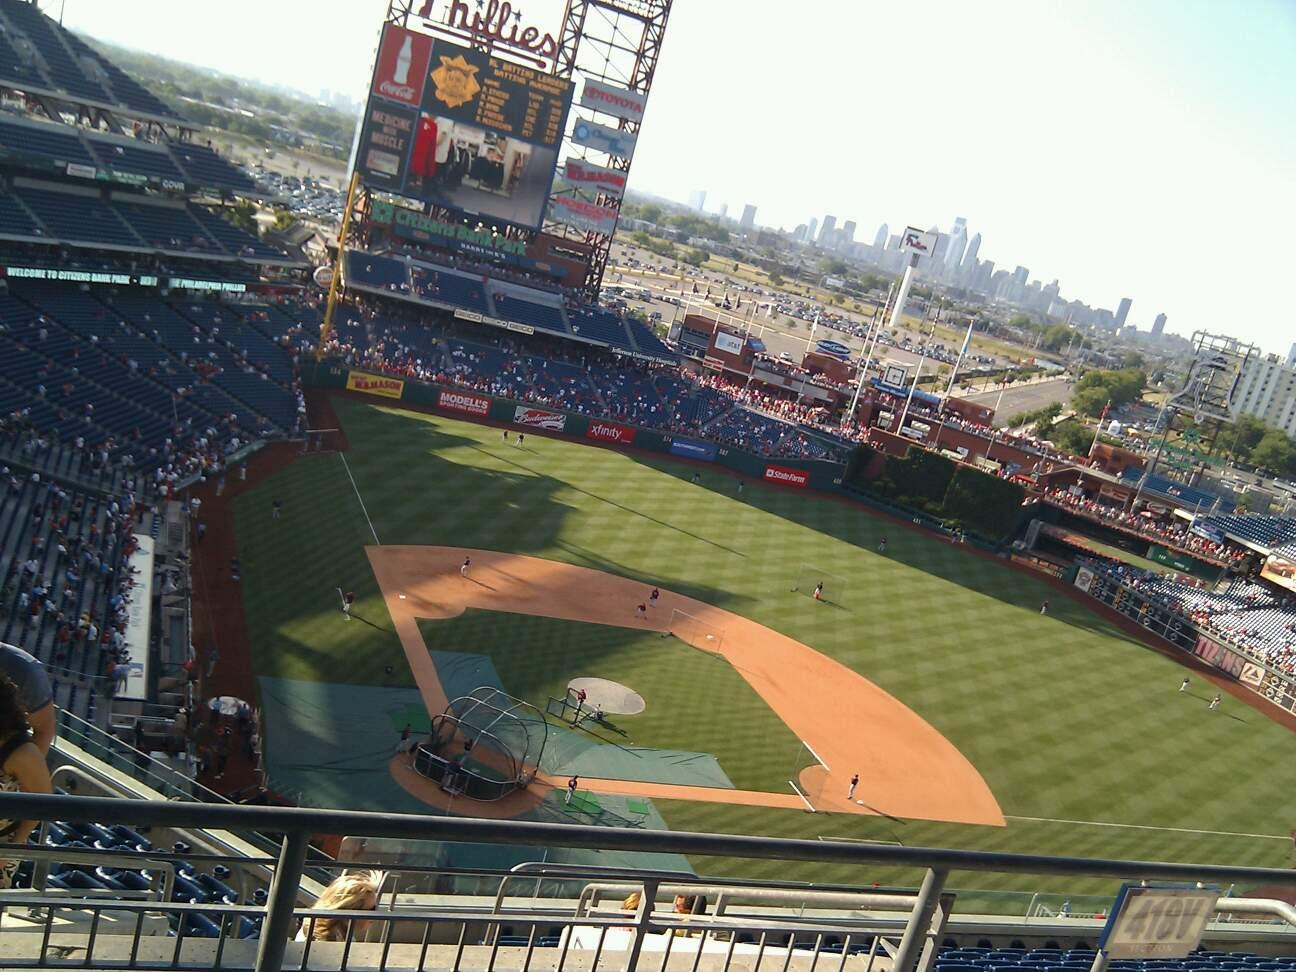 Citizens Bank Park Section 418 Row 12 Seat 27